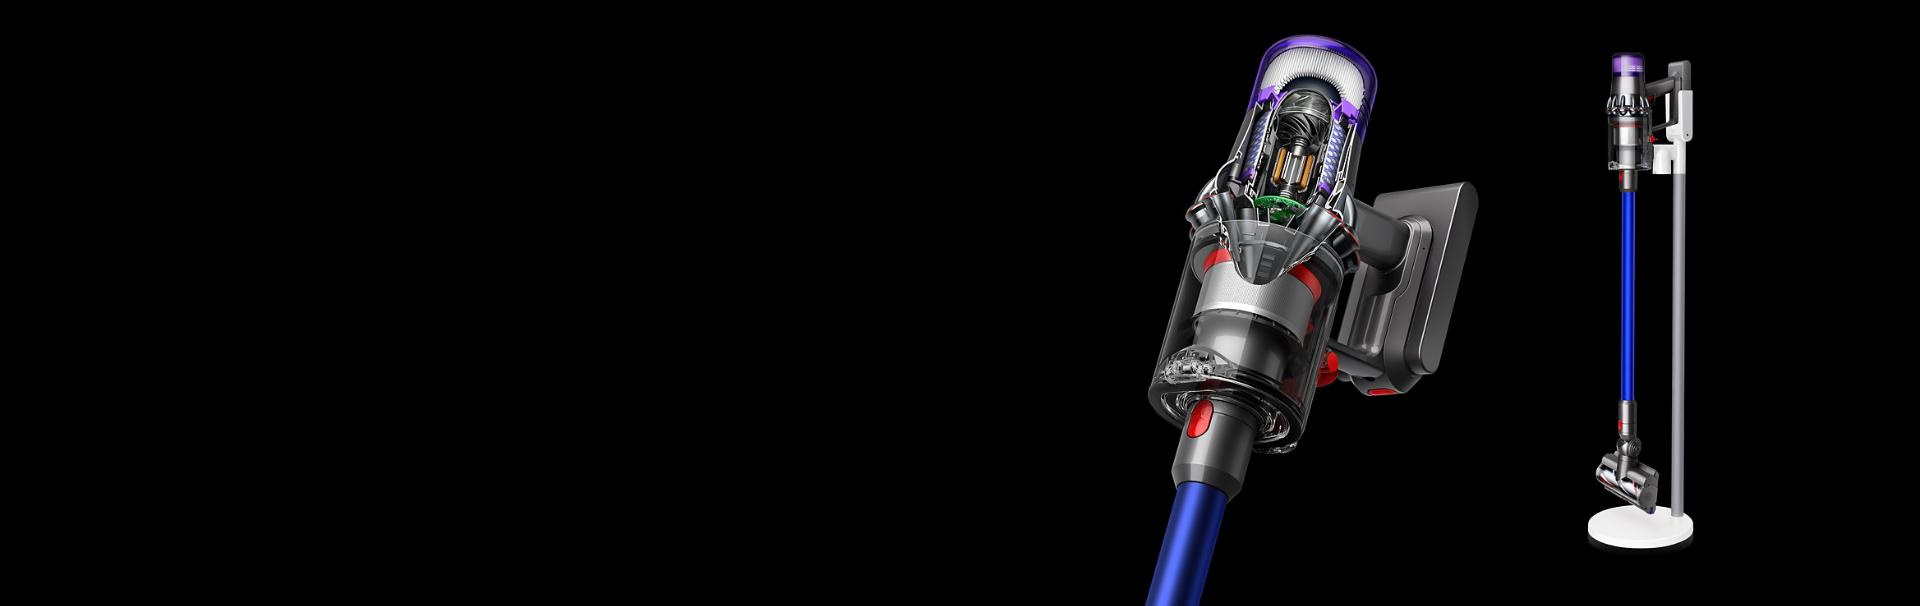 Person changing mode of Dyson V11